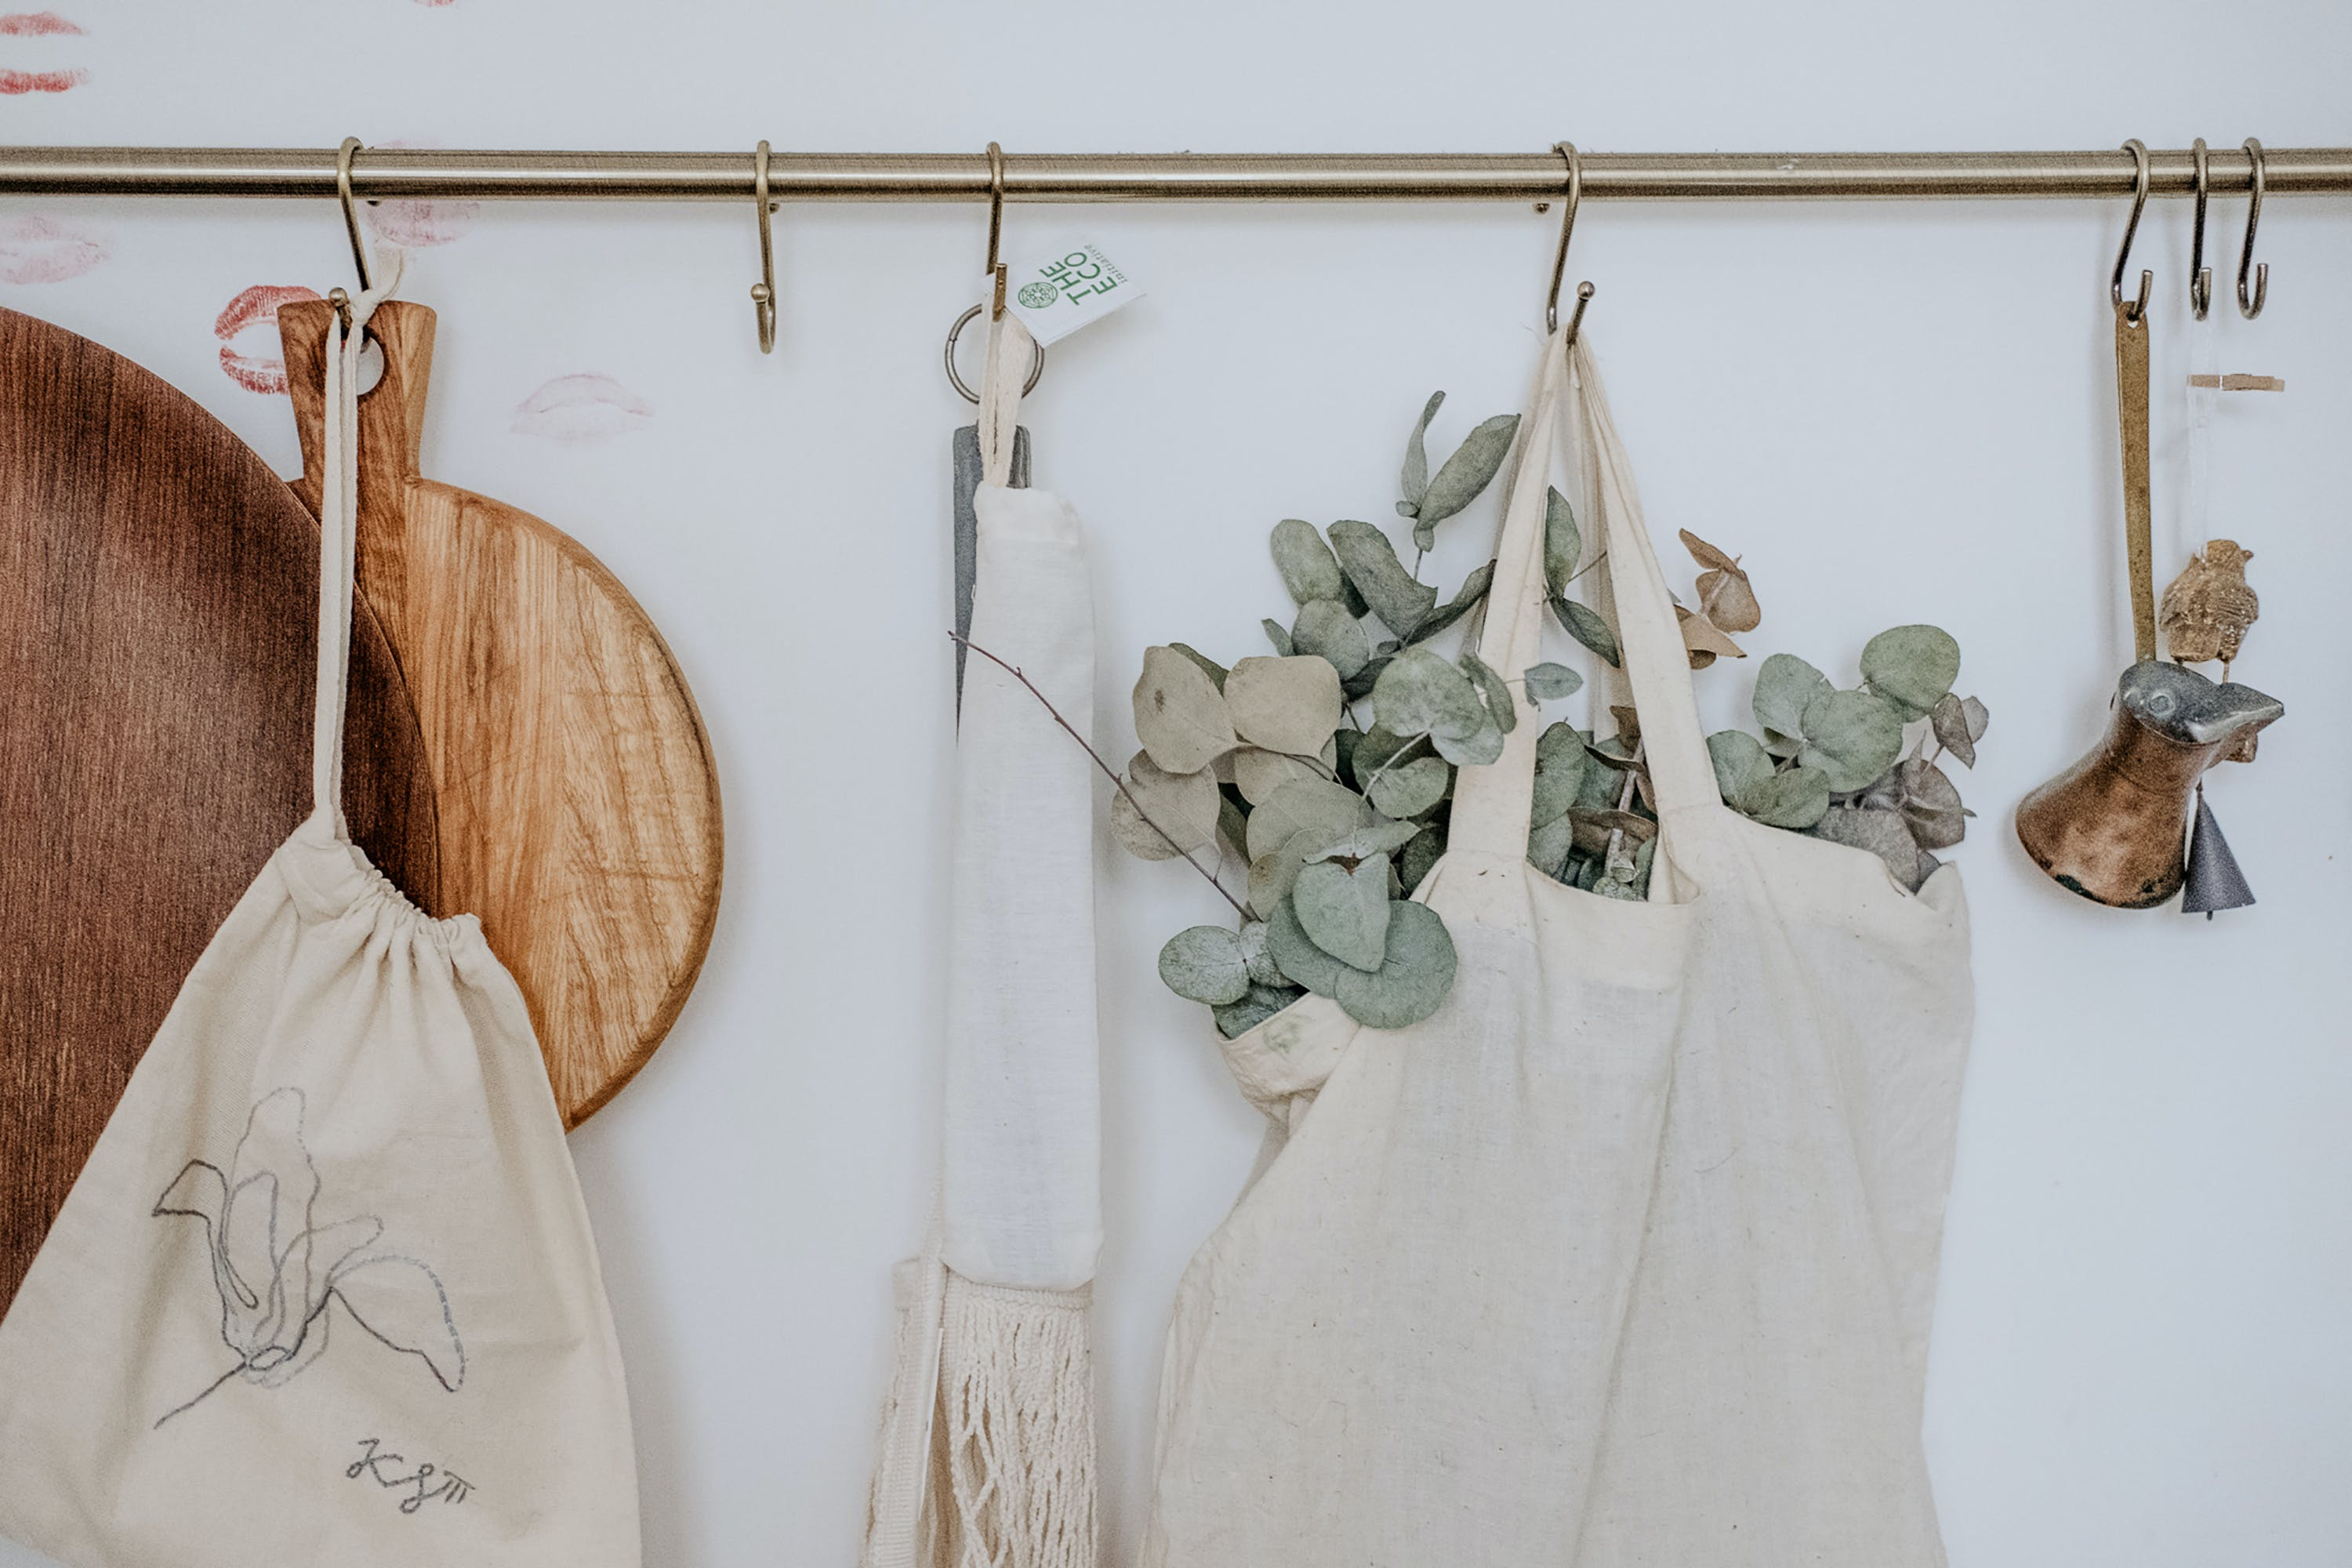 Aprons, Chopping Board and Bag Hanged on White Painted Wall